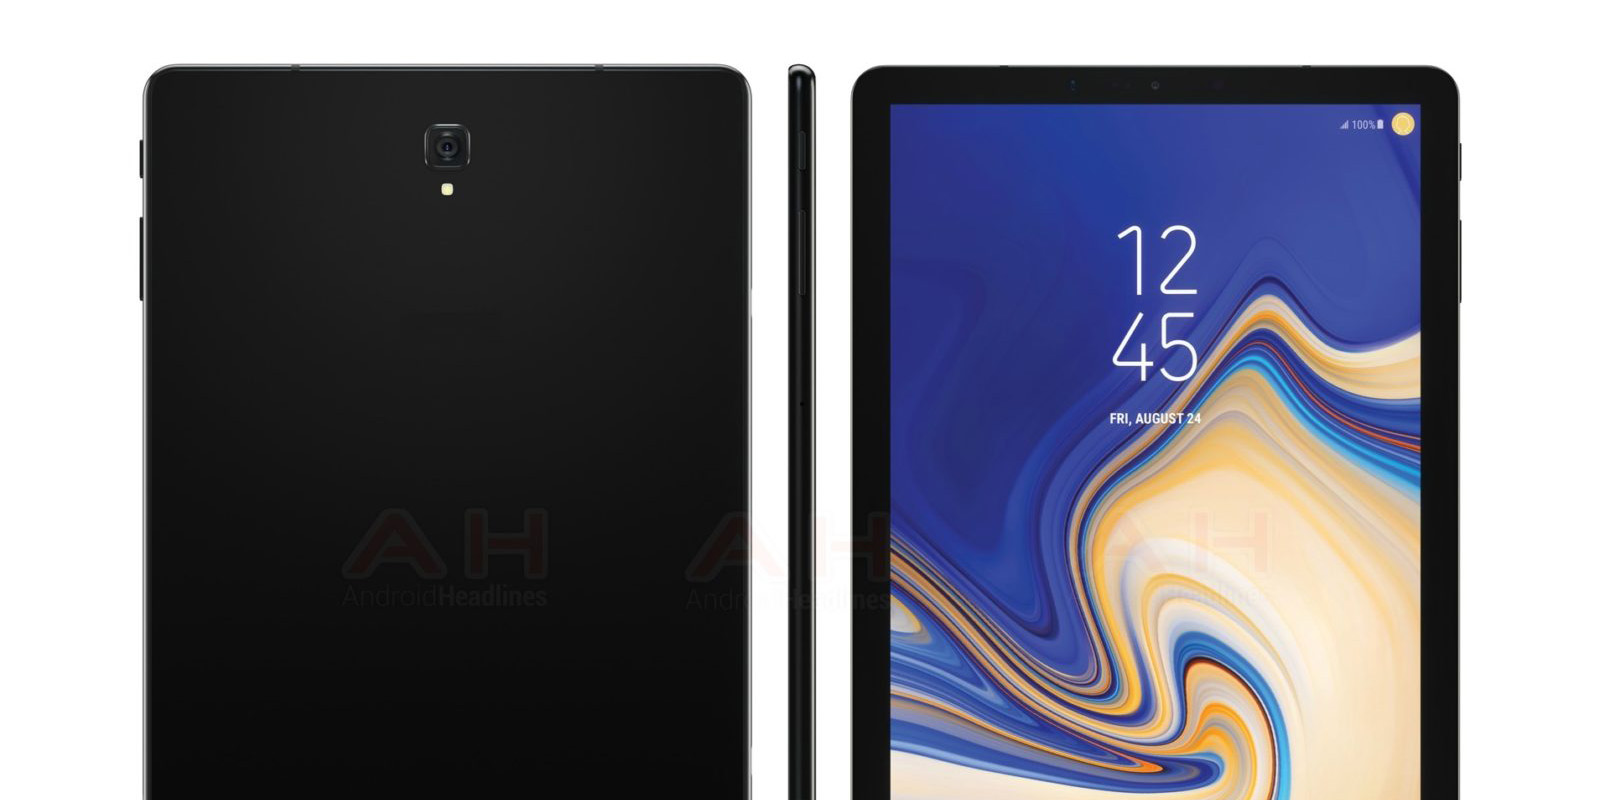 samsung galaxy tab s4 leaks at best buy confirms specs and 649 price google assistant integration